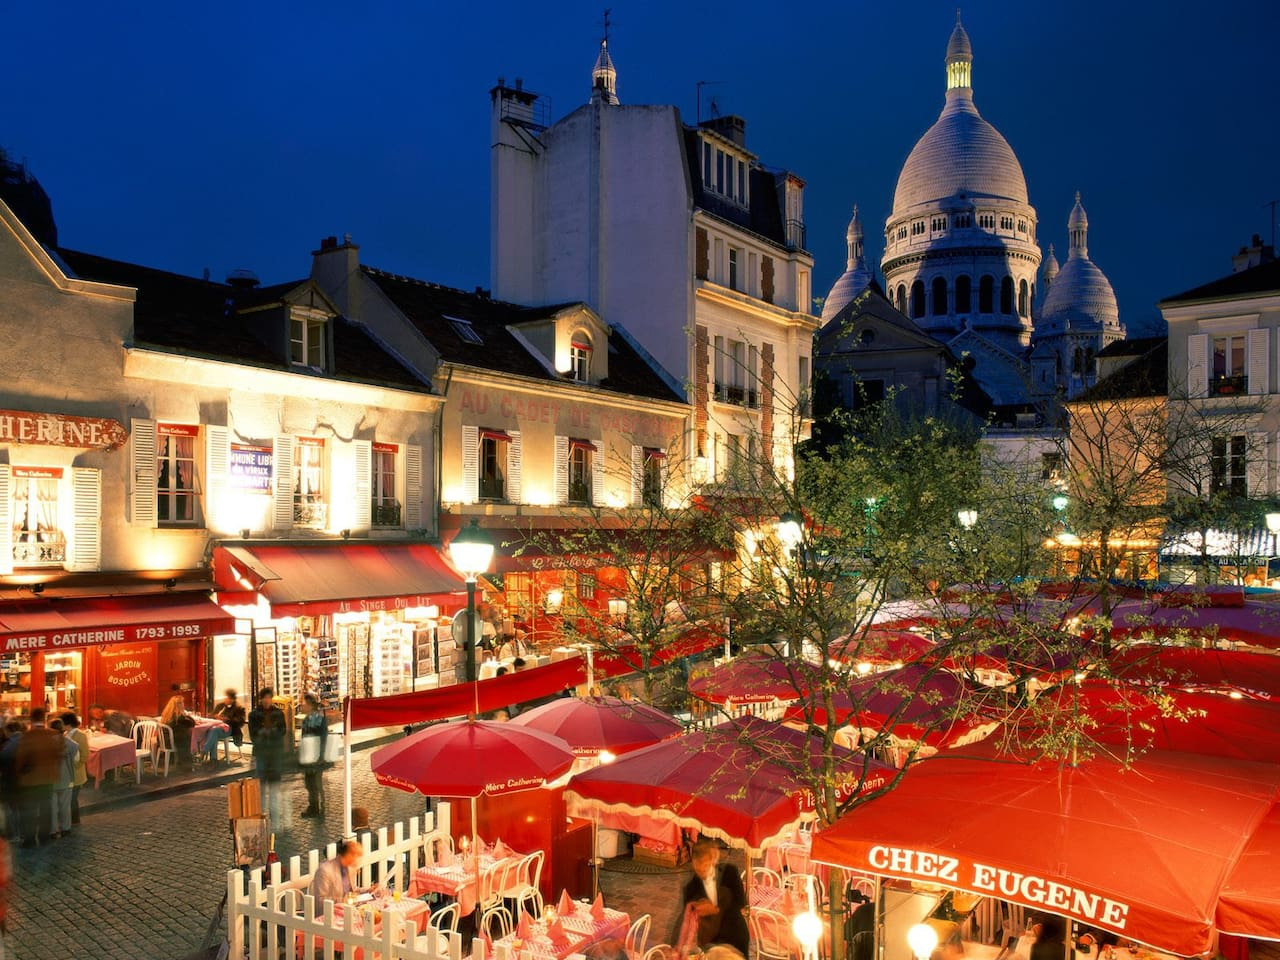 place du terre by night and basilica of sacre coeur at the foot of the flat